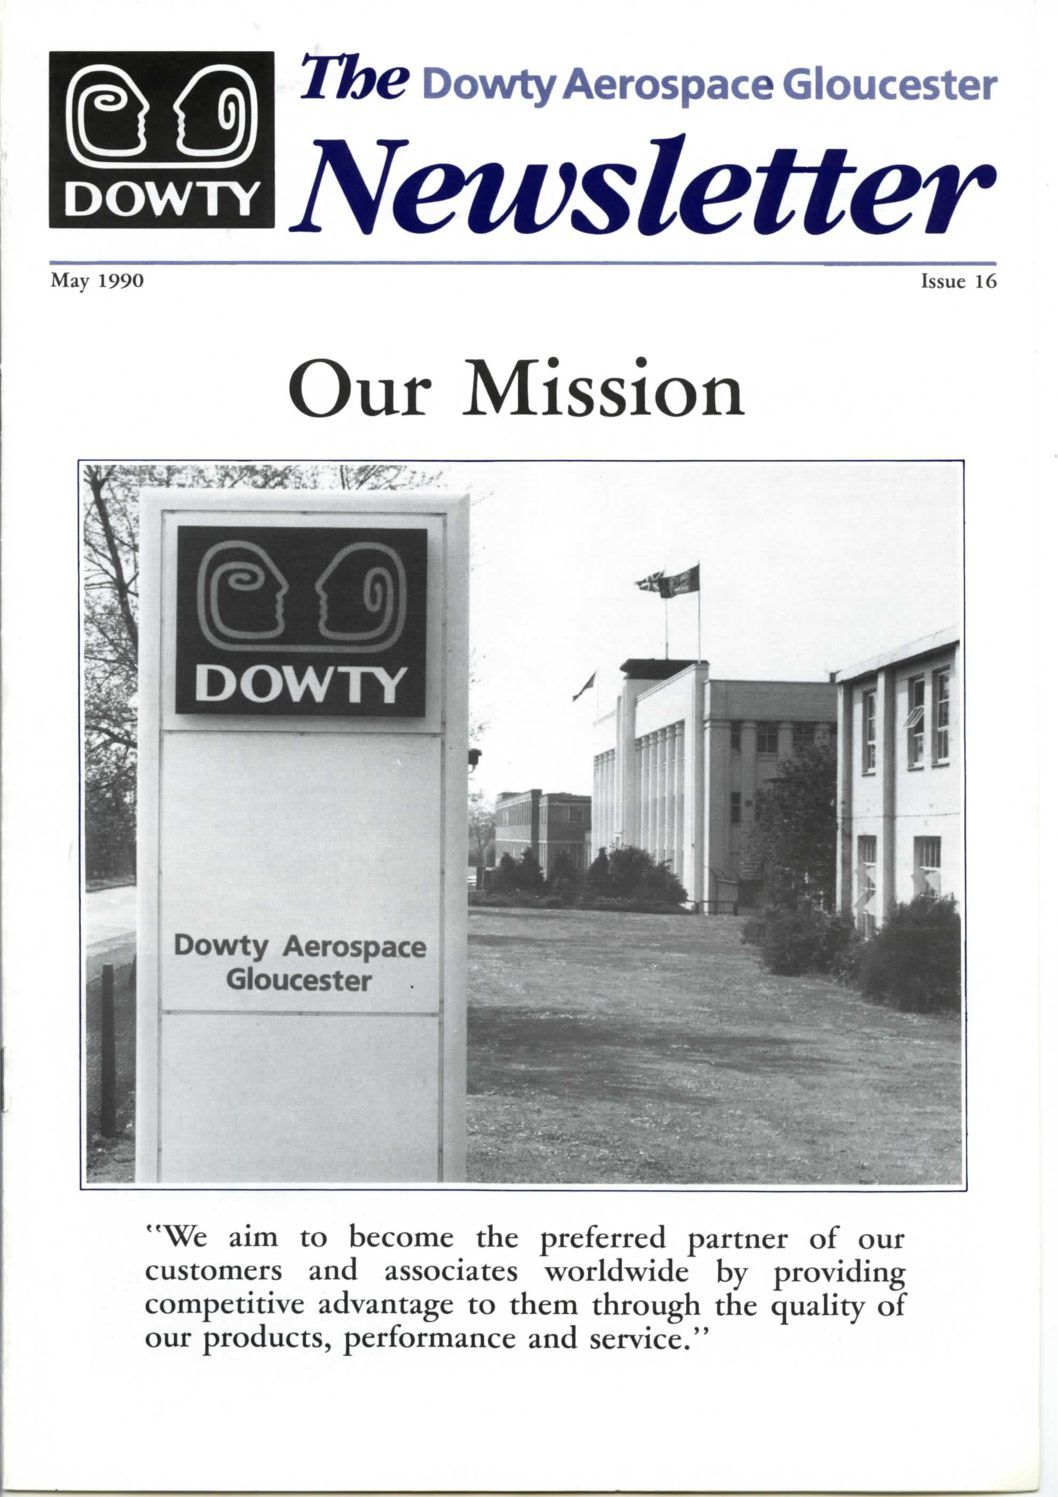 Dowty Aerospace - Newsletters